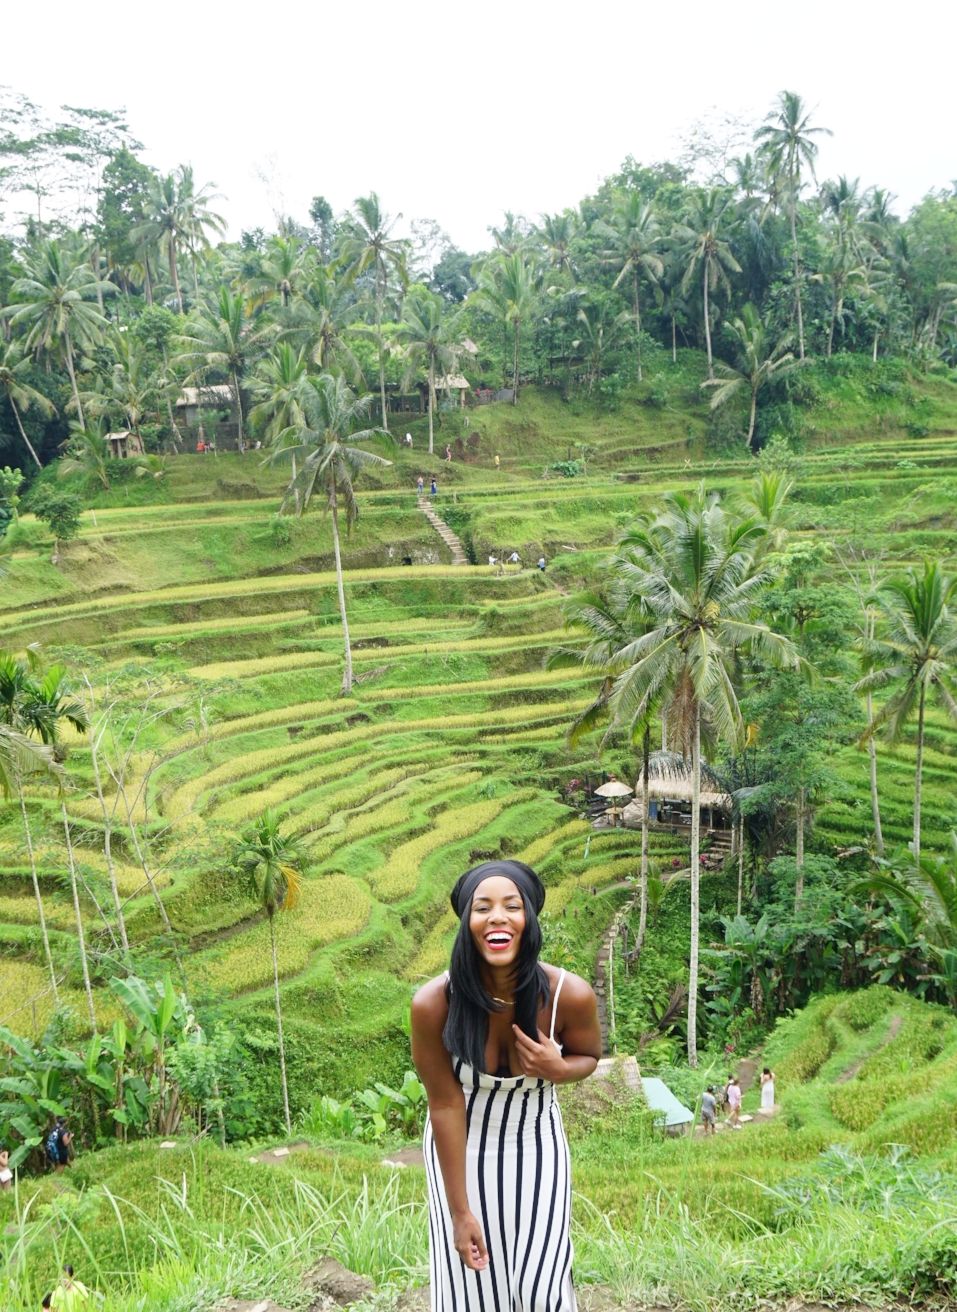 Tegalalang Rice Terrace - Bali, Indonesia